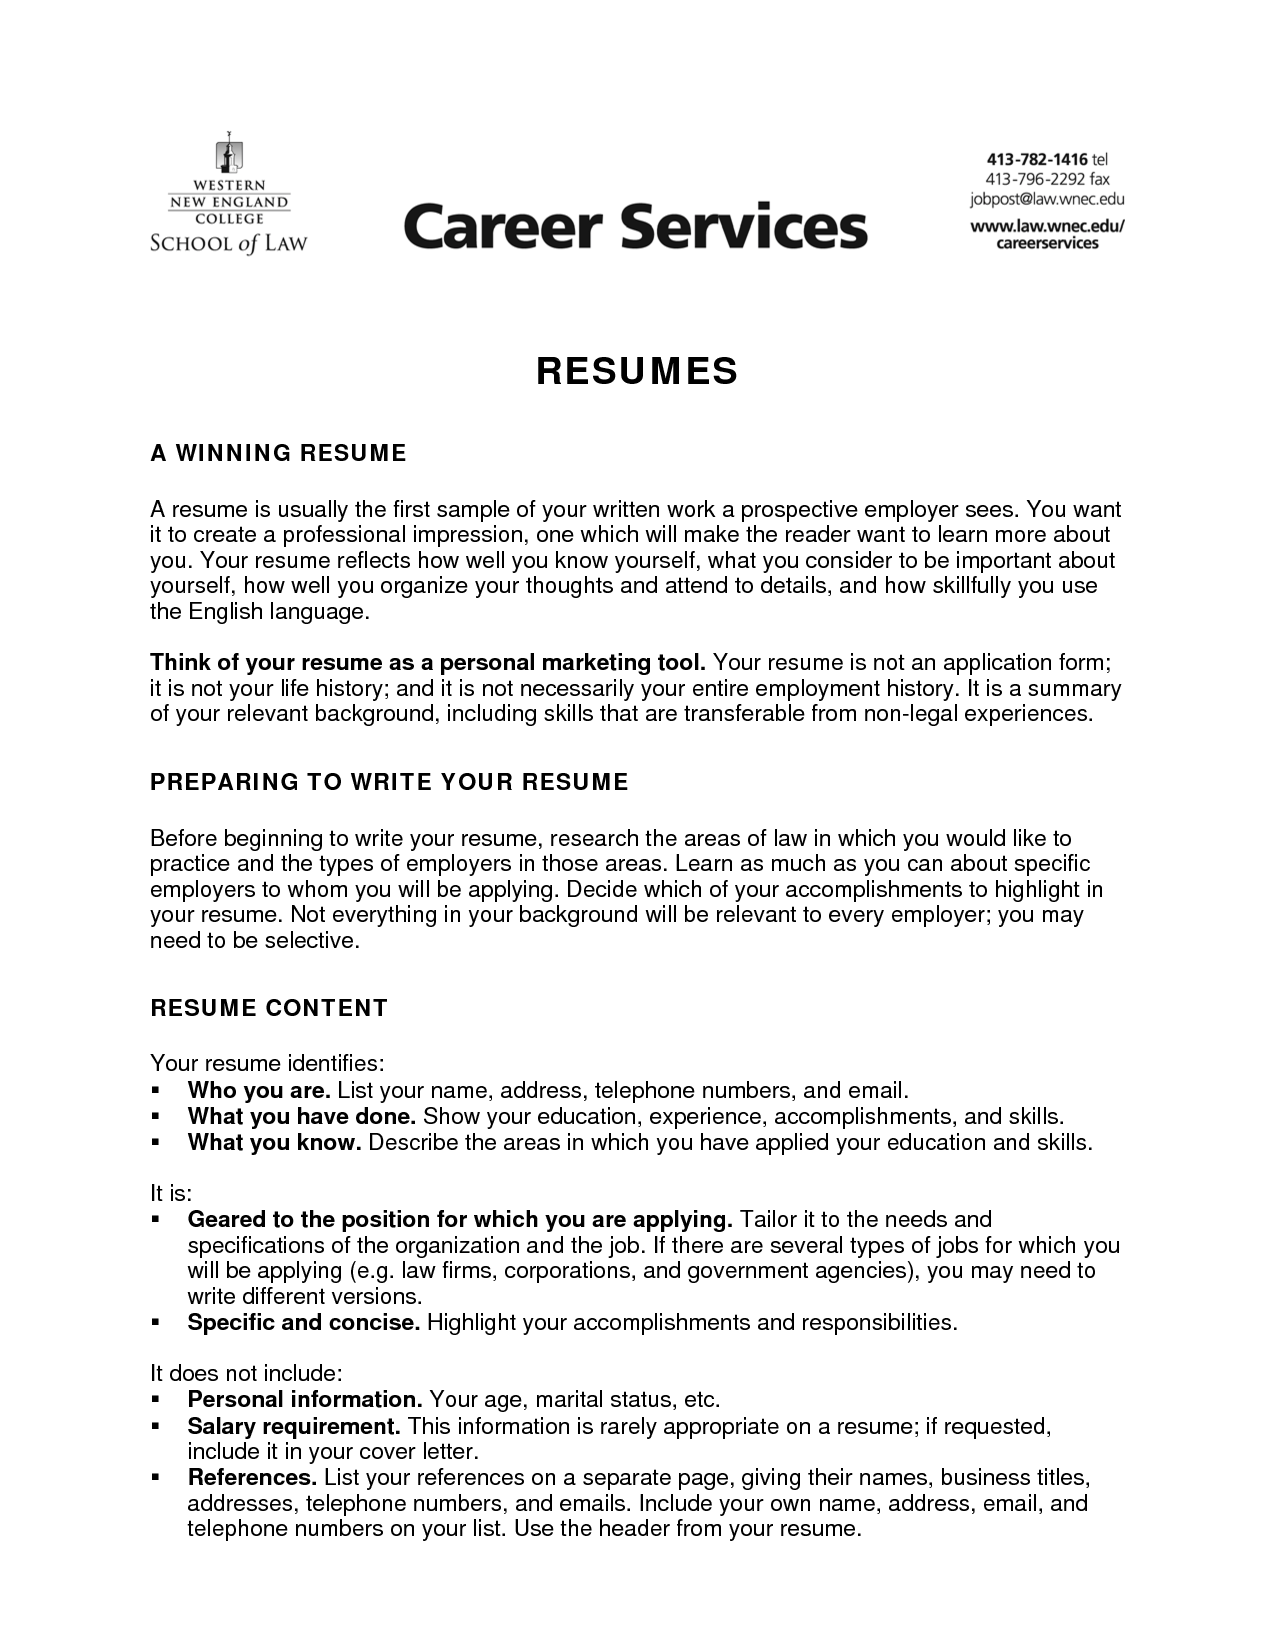 these things could be useful for you if you need to deal with the resume introduction composing